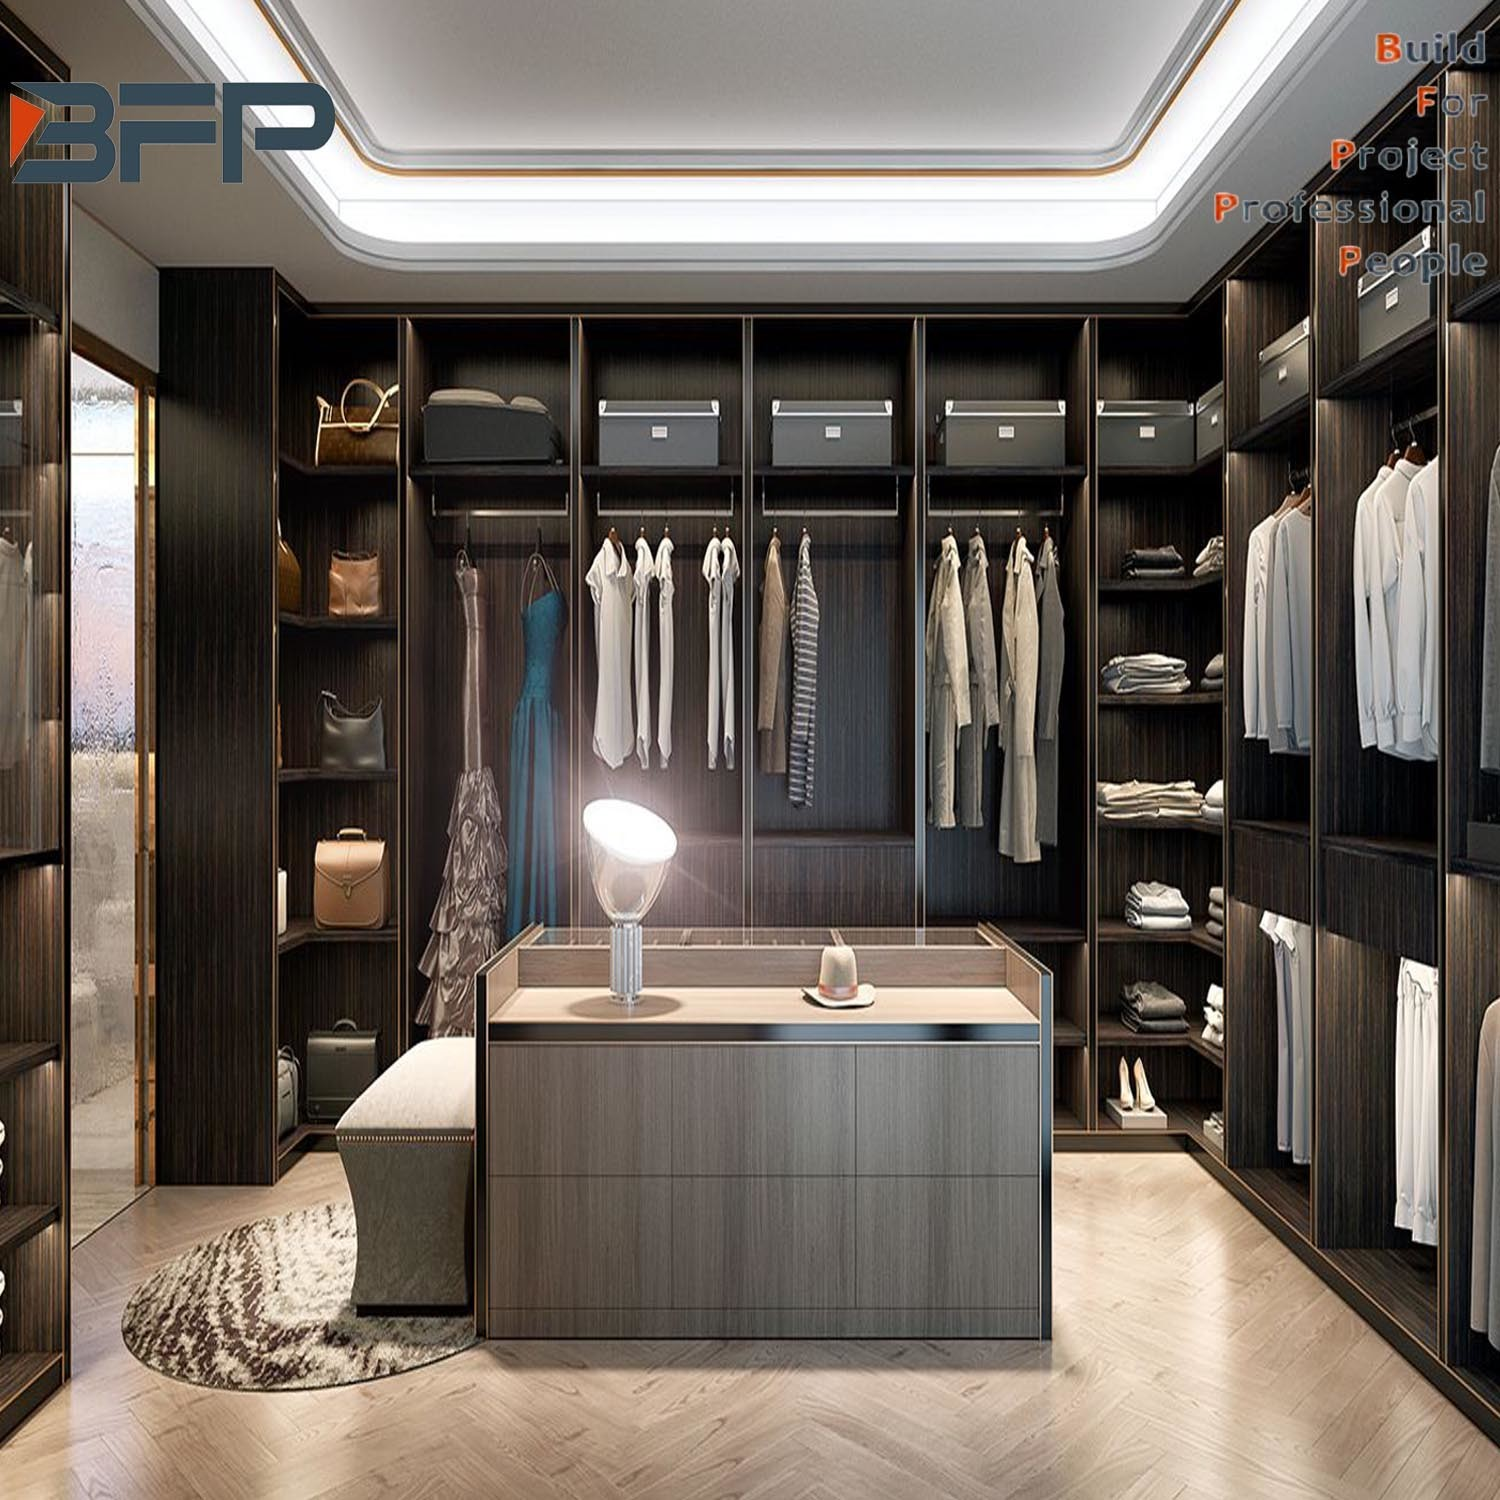 China Luxury High End Design Affordable Price Solid Wood Walk In Wardrobe China Glass Door Wardrobe Bedroom Furniture